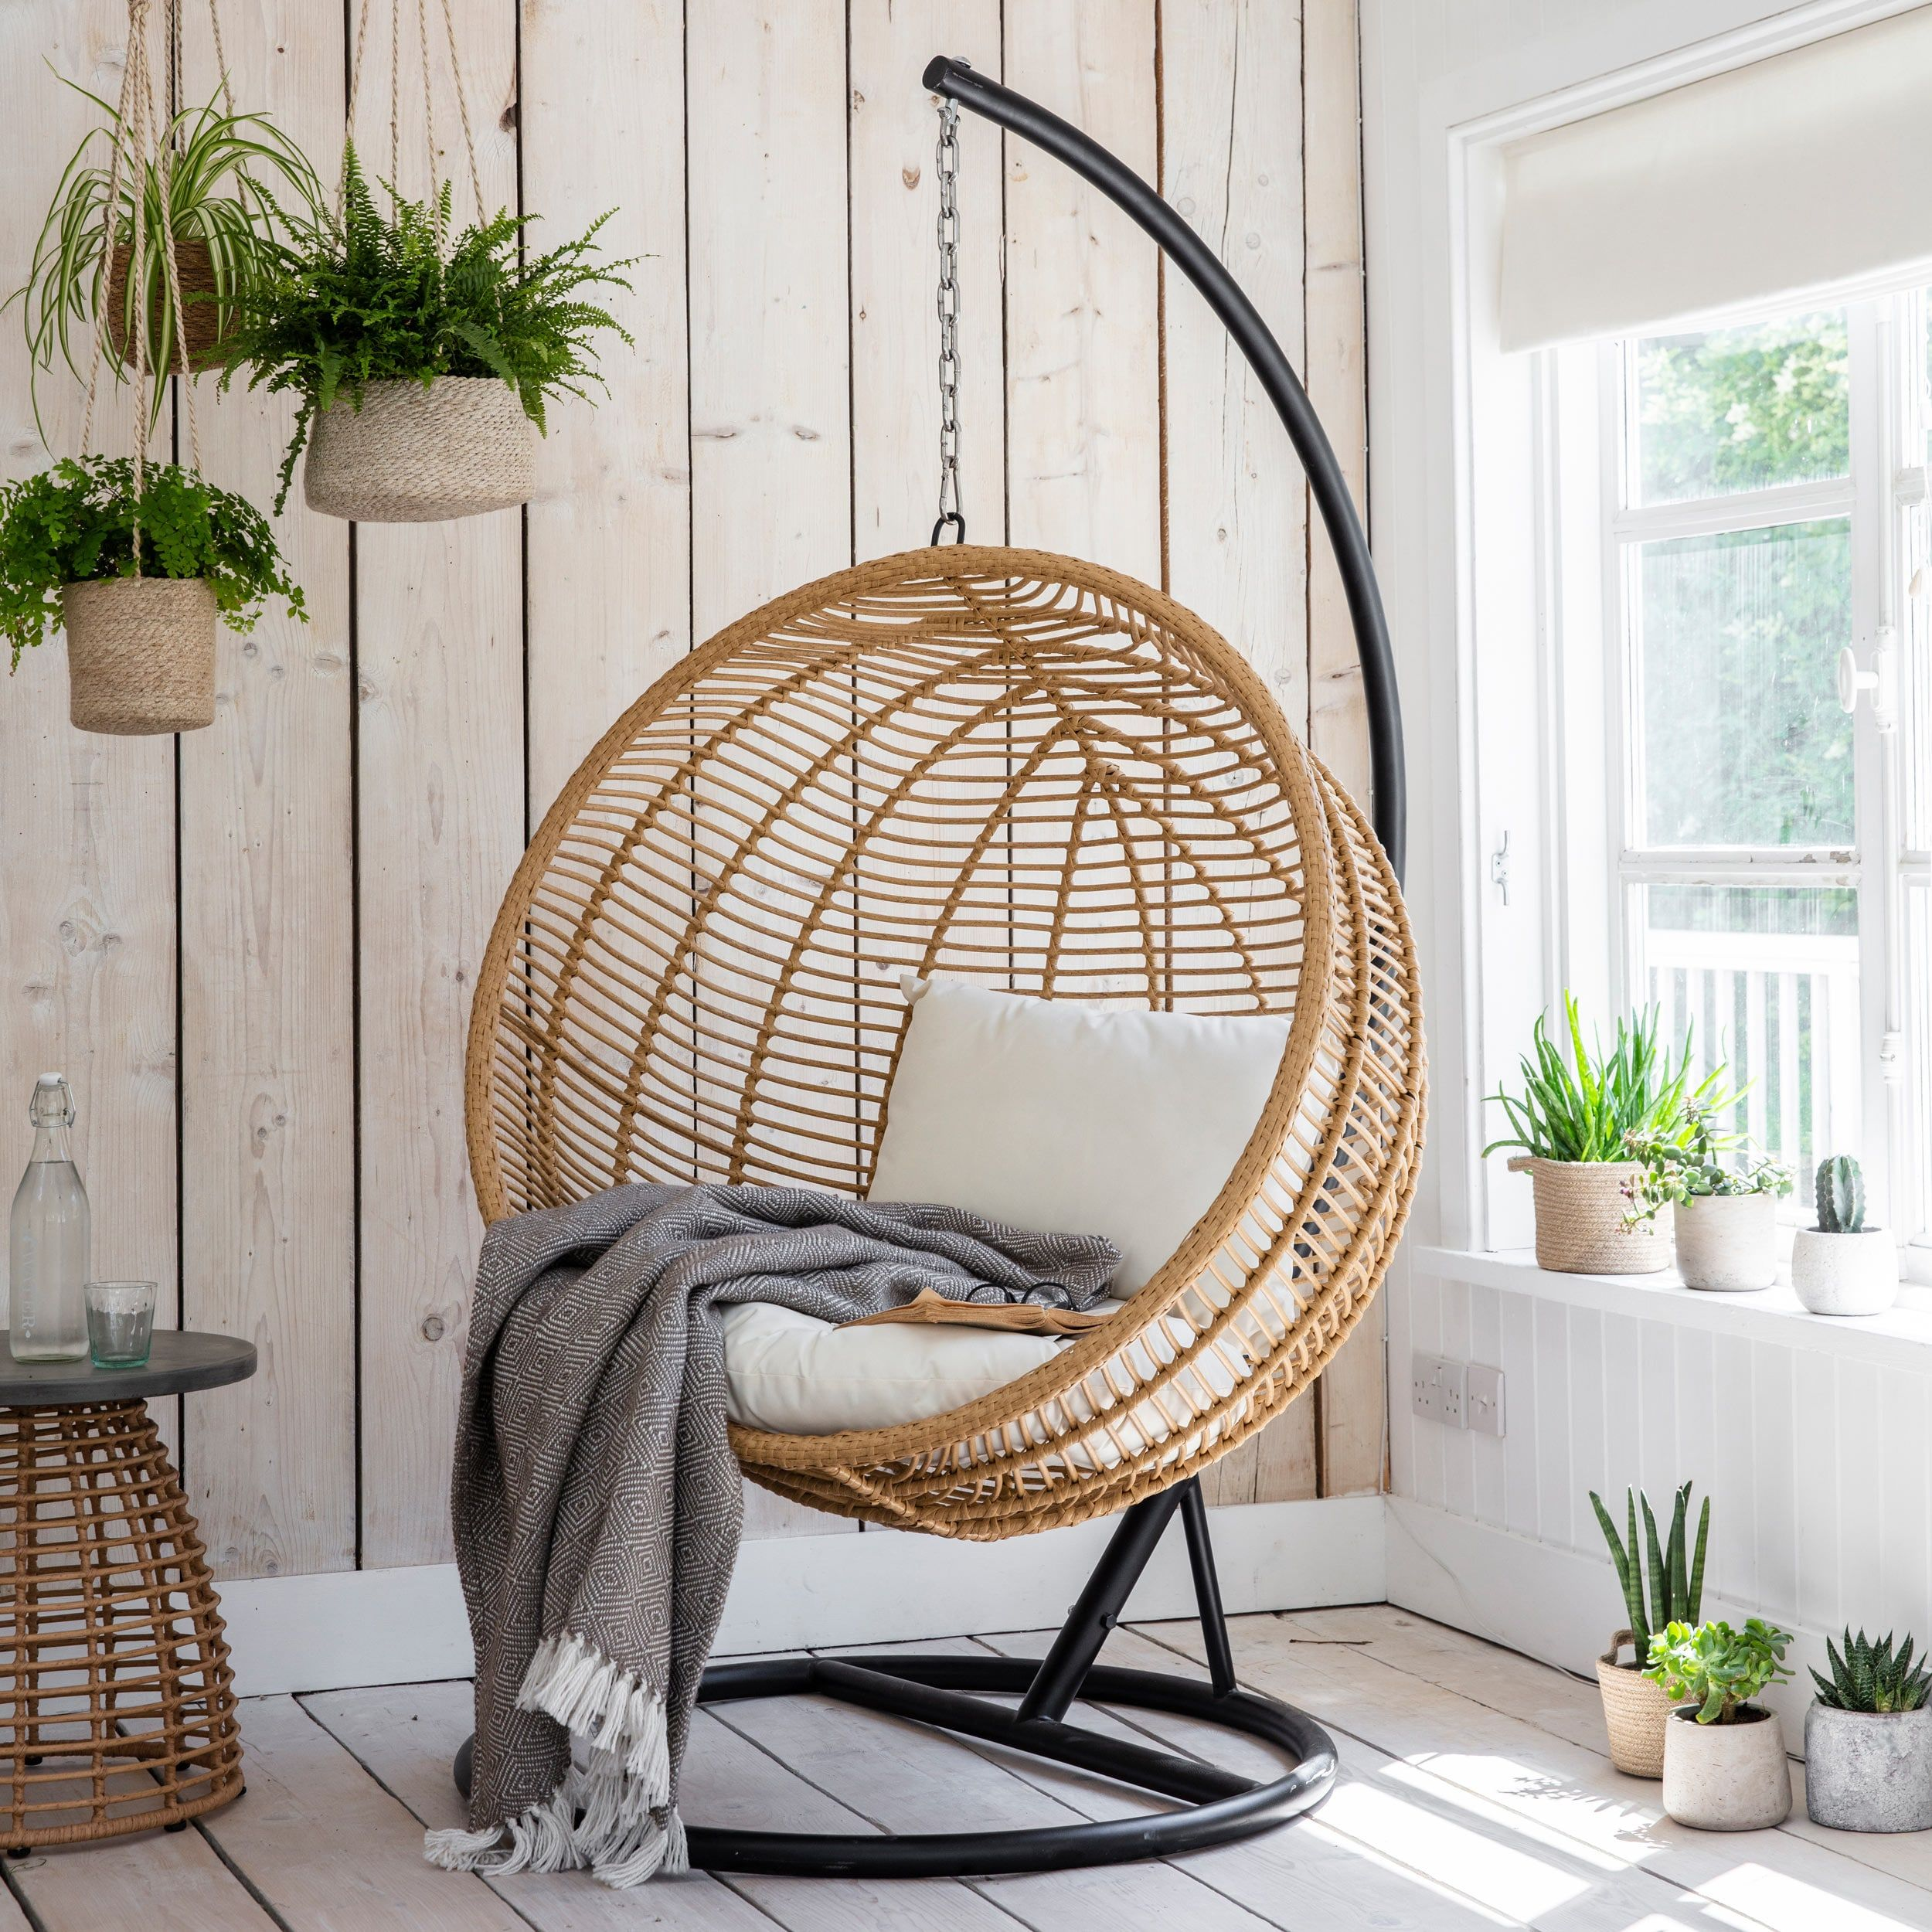 Hampstead Hanging Nest Chair Hanging egg chair, Nest